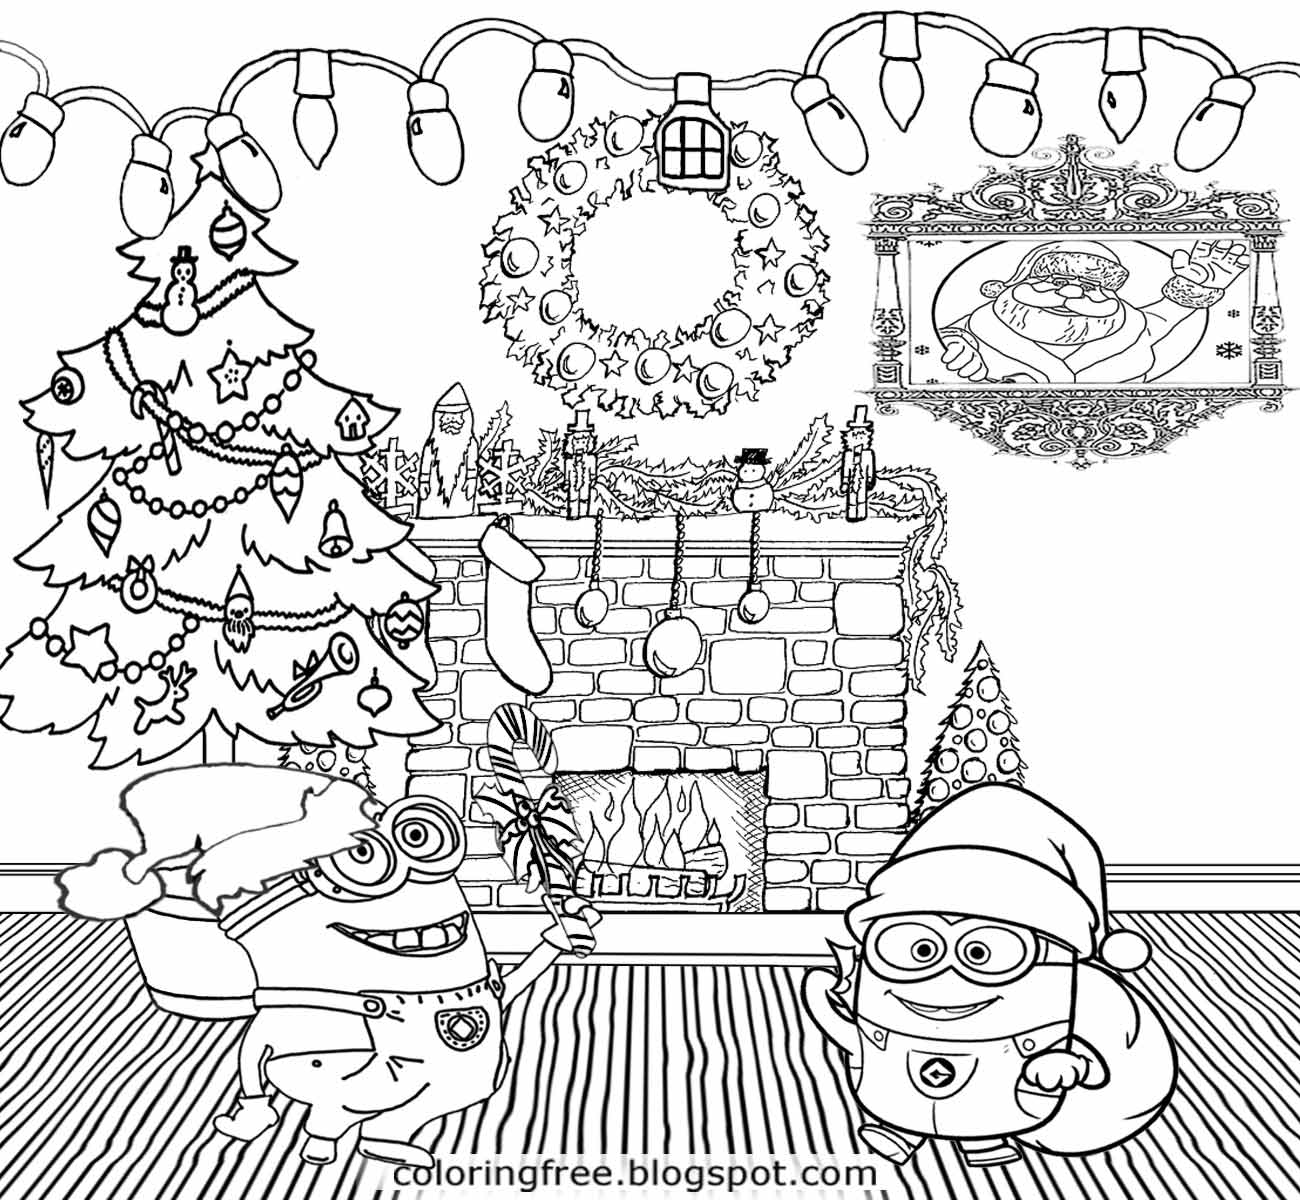 Uncategorized Drawing To Print lets coloring book cool merry christmas minions pages xmas tree party things to draw for teenagers print